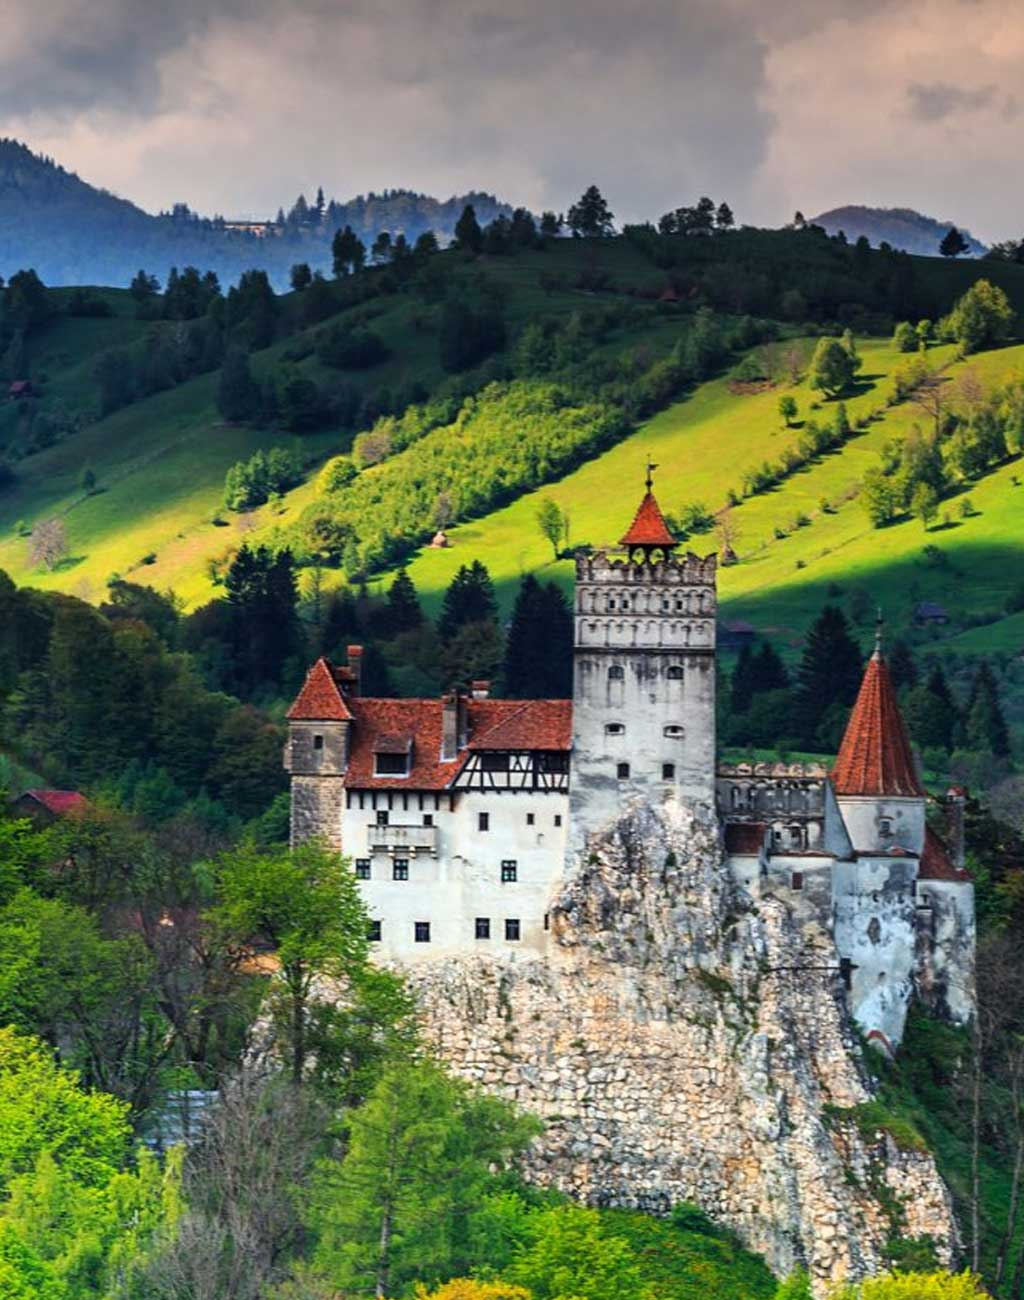 Your motorcycle tour in Transylvania has so much to offer